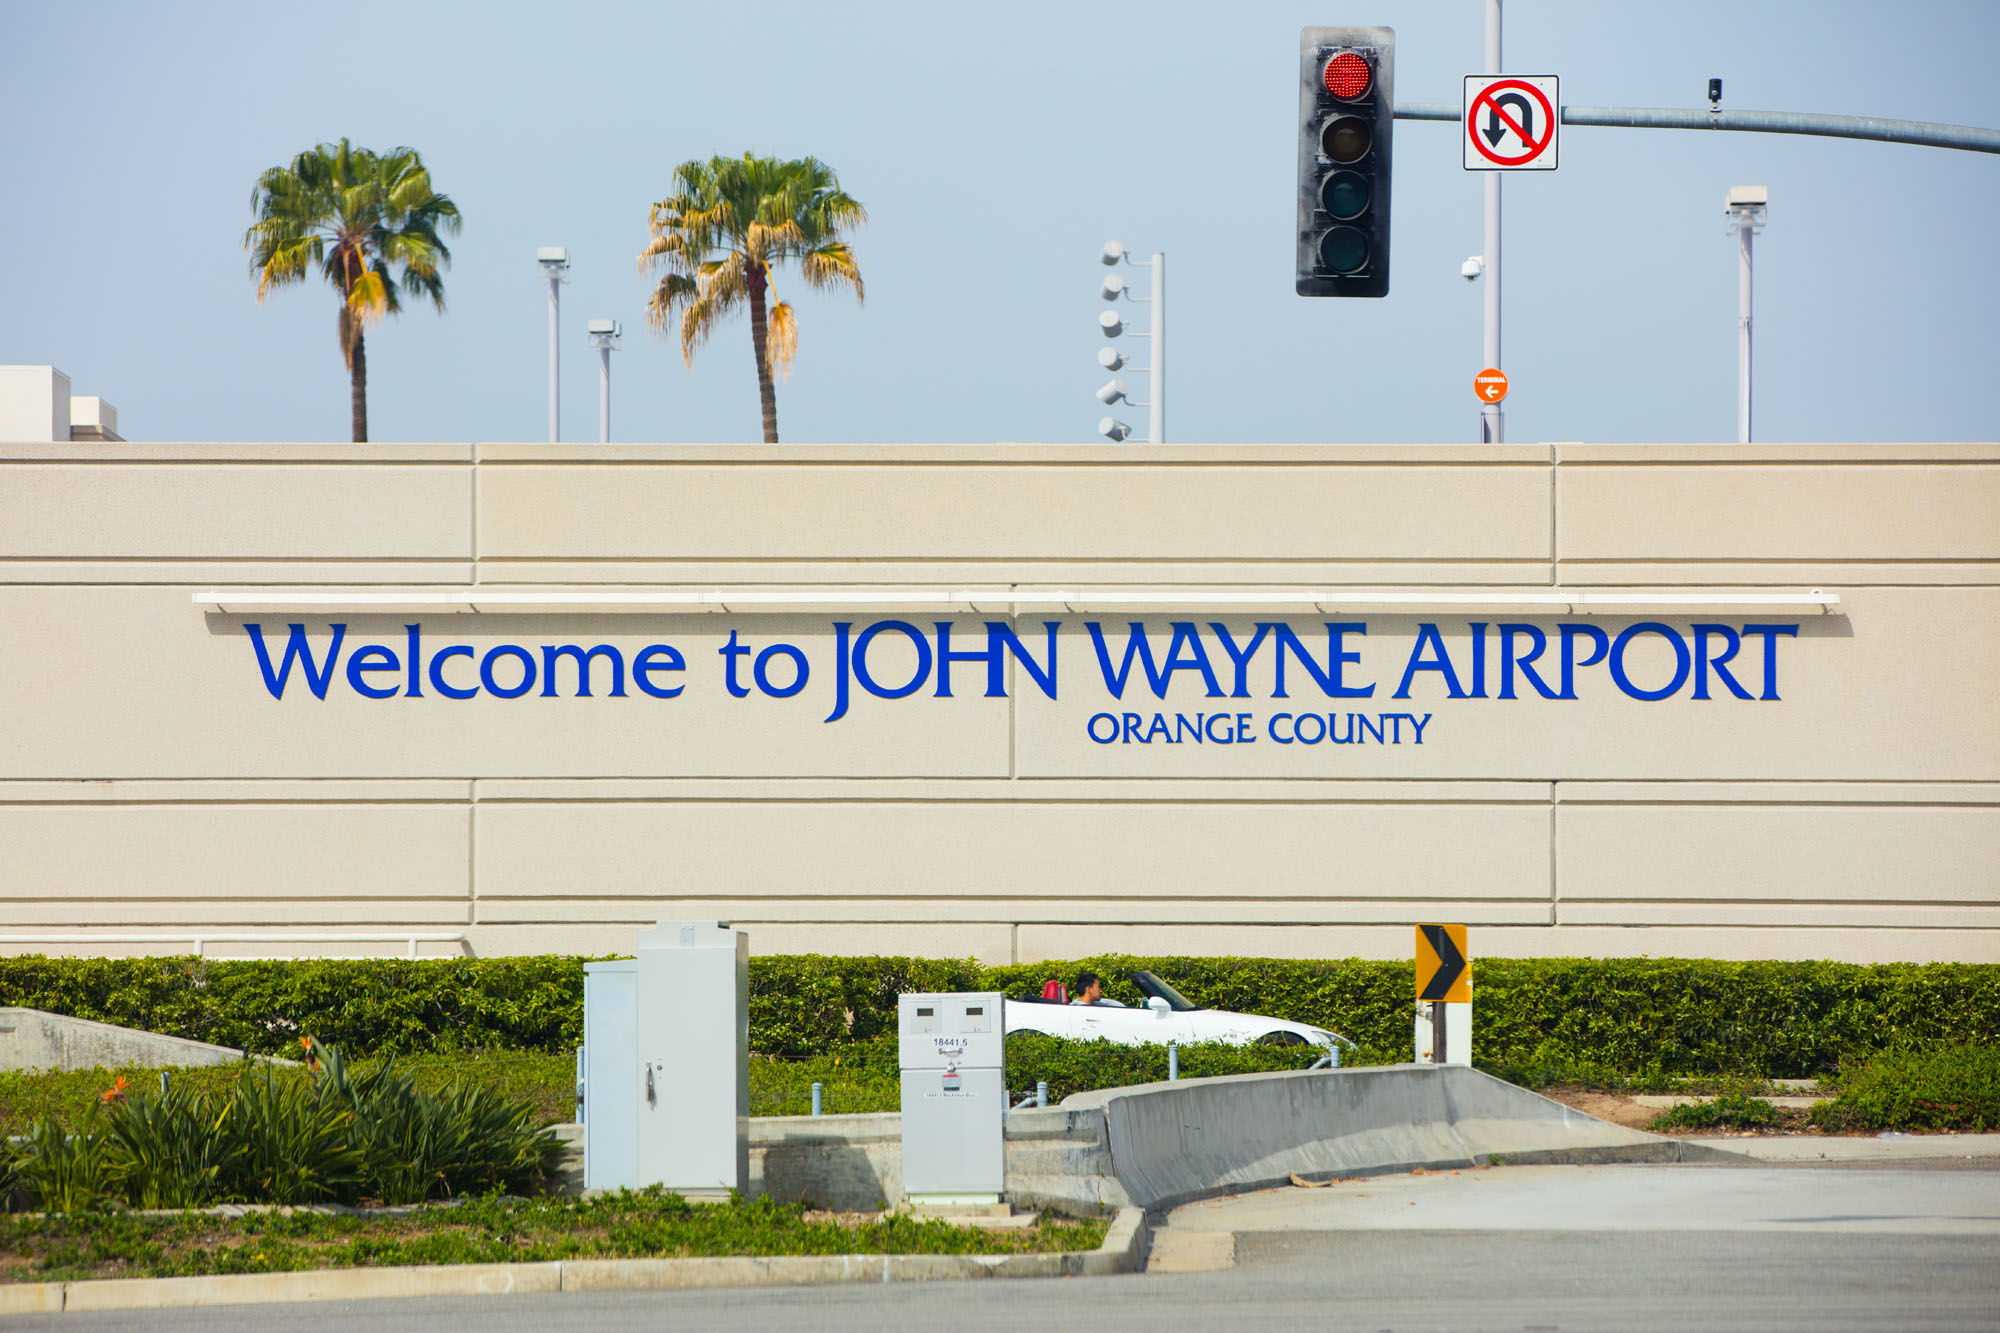 Five minutes from Orange County's John Wayne Airport.